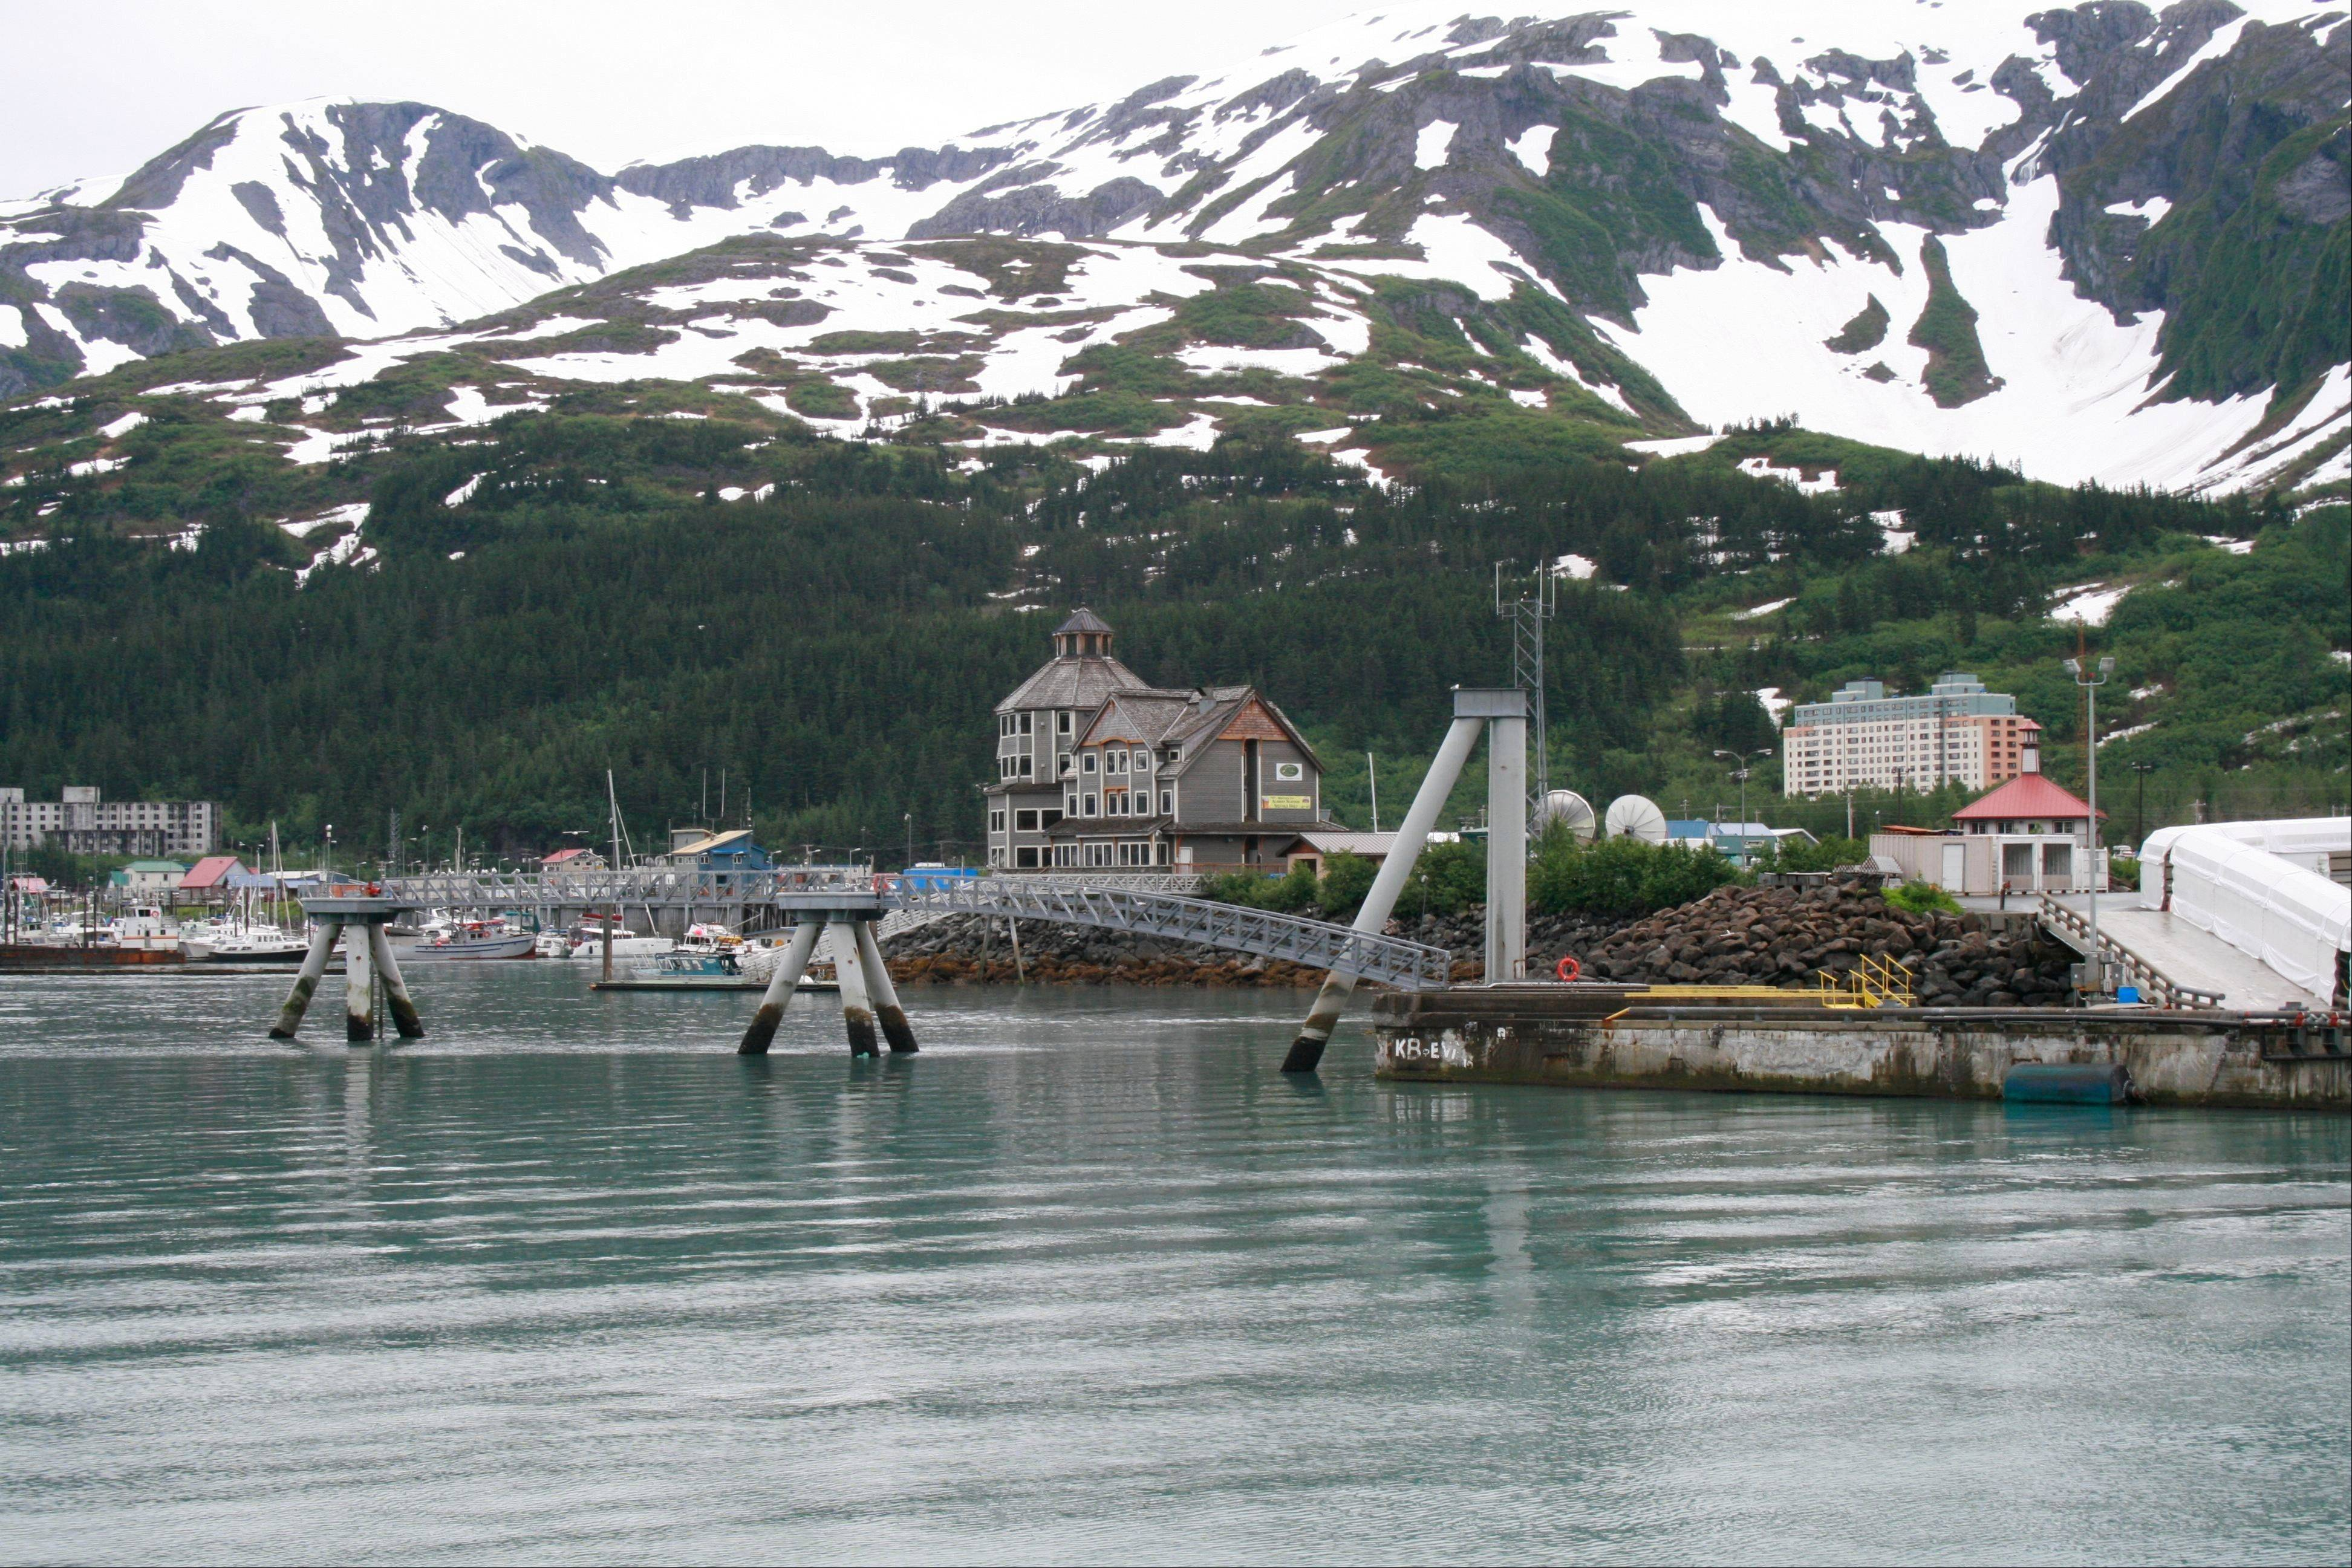 The tiny community of Whittier, Alaska, where most of the 180 year-round residents live in the tall condo in the back, a former Army garrison, is a scenic place to kayak, hike trails or visit a few tourist shops, cafes and restaurants.